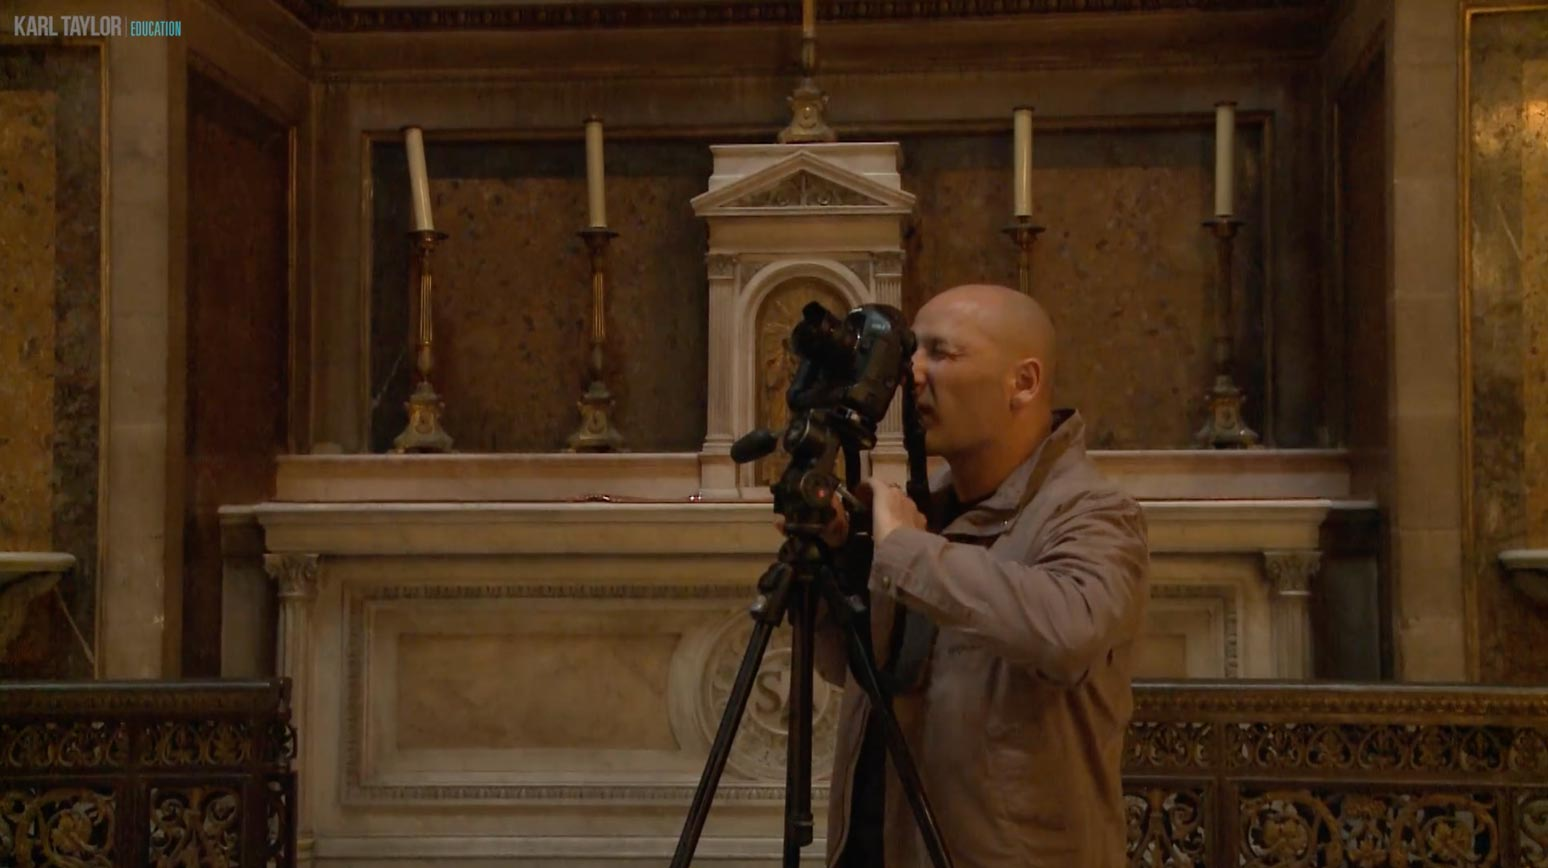 Karl using a tripod for photography architecture